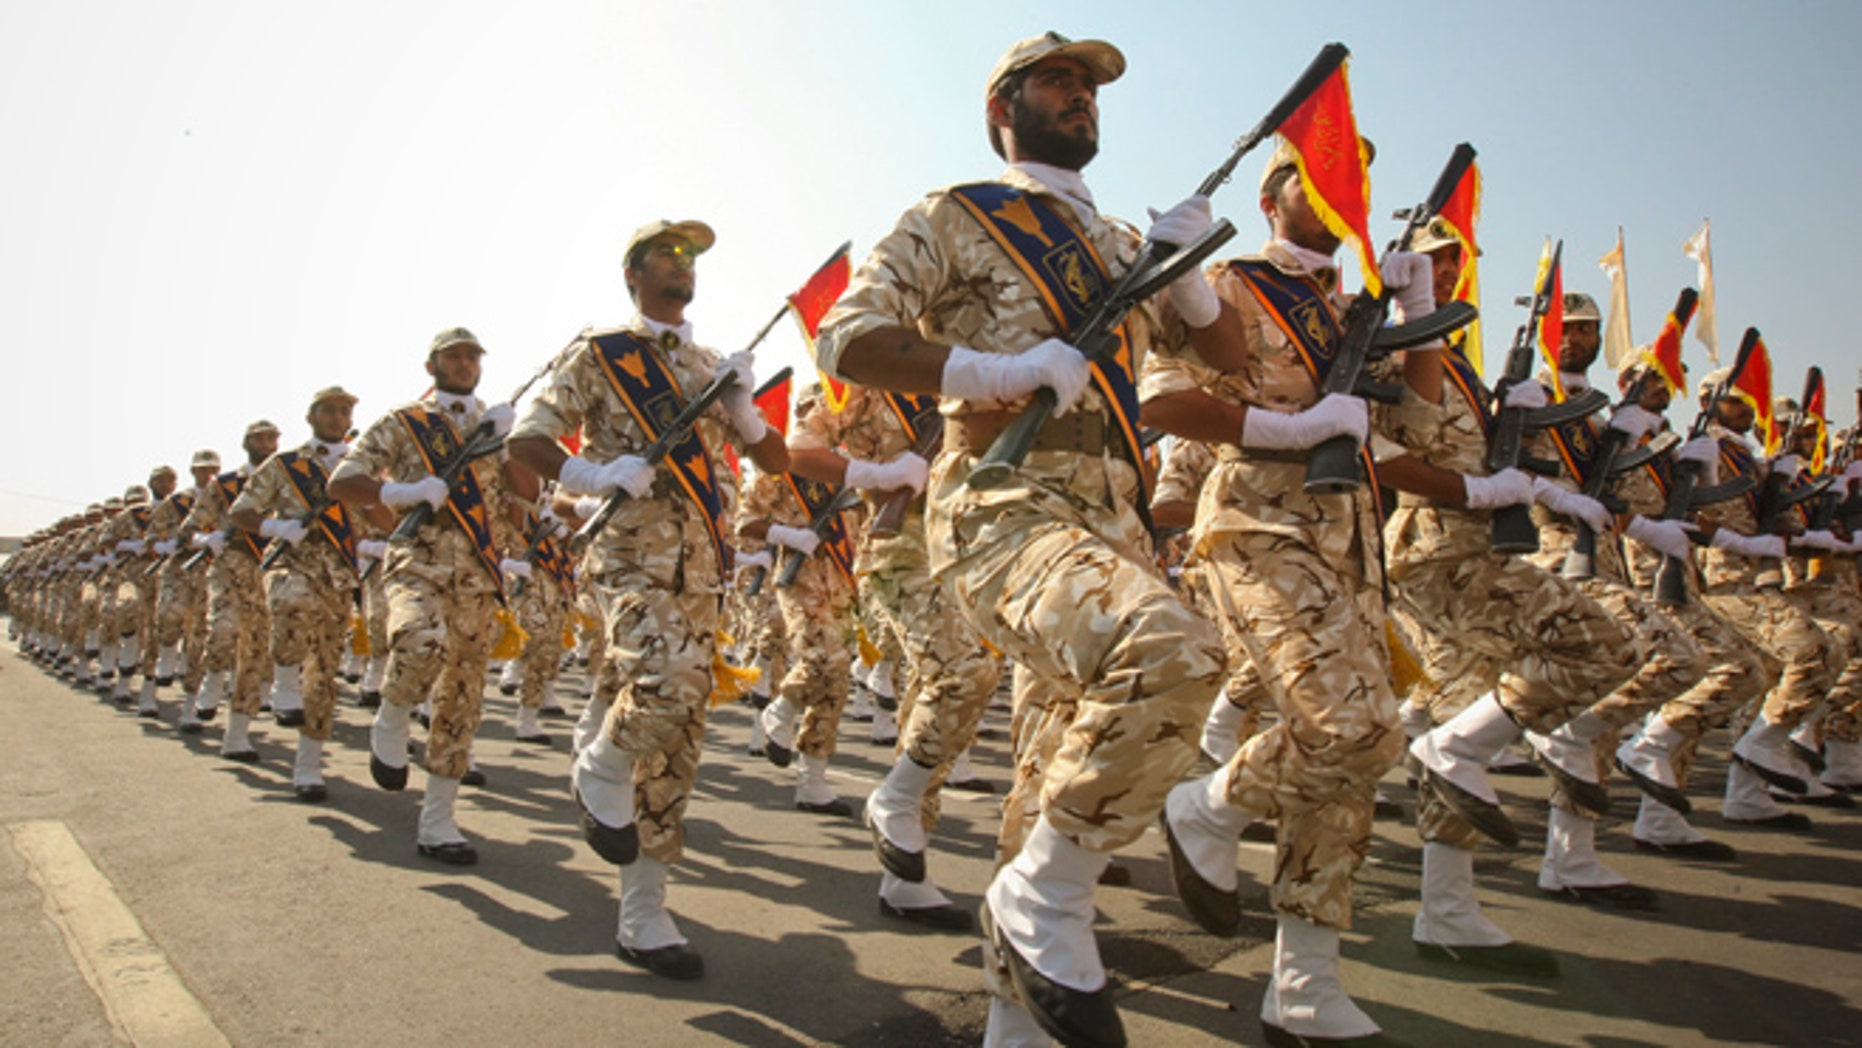 Sept. 22, 2011: Members of the Iranian Revolutionary Guard march during a parade to commemorate the anniversary of the Iran-Iraq war (1980-88) in Tehran.